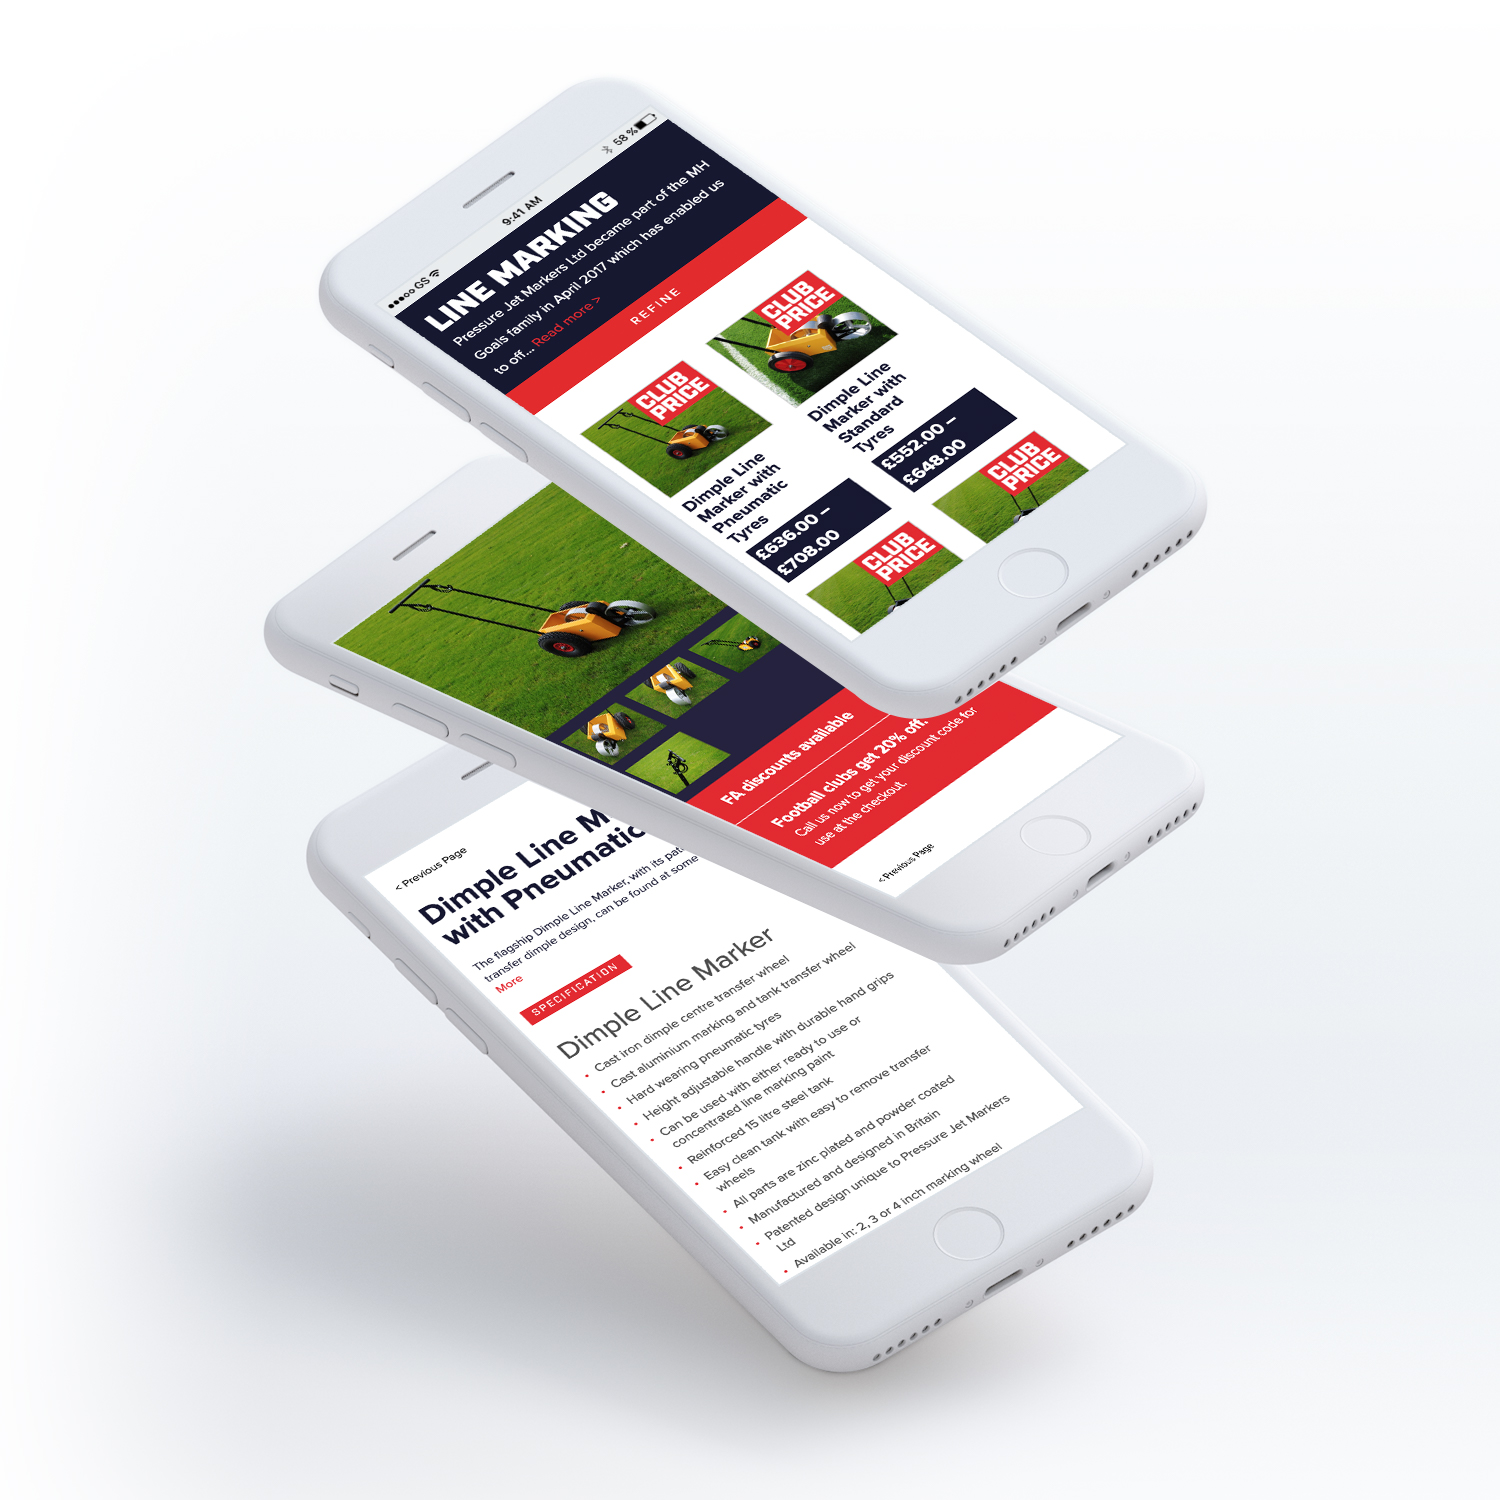 MH Goals mobile site